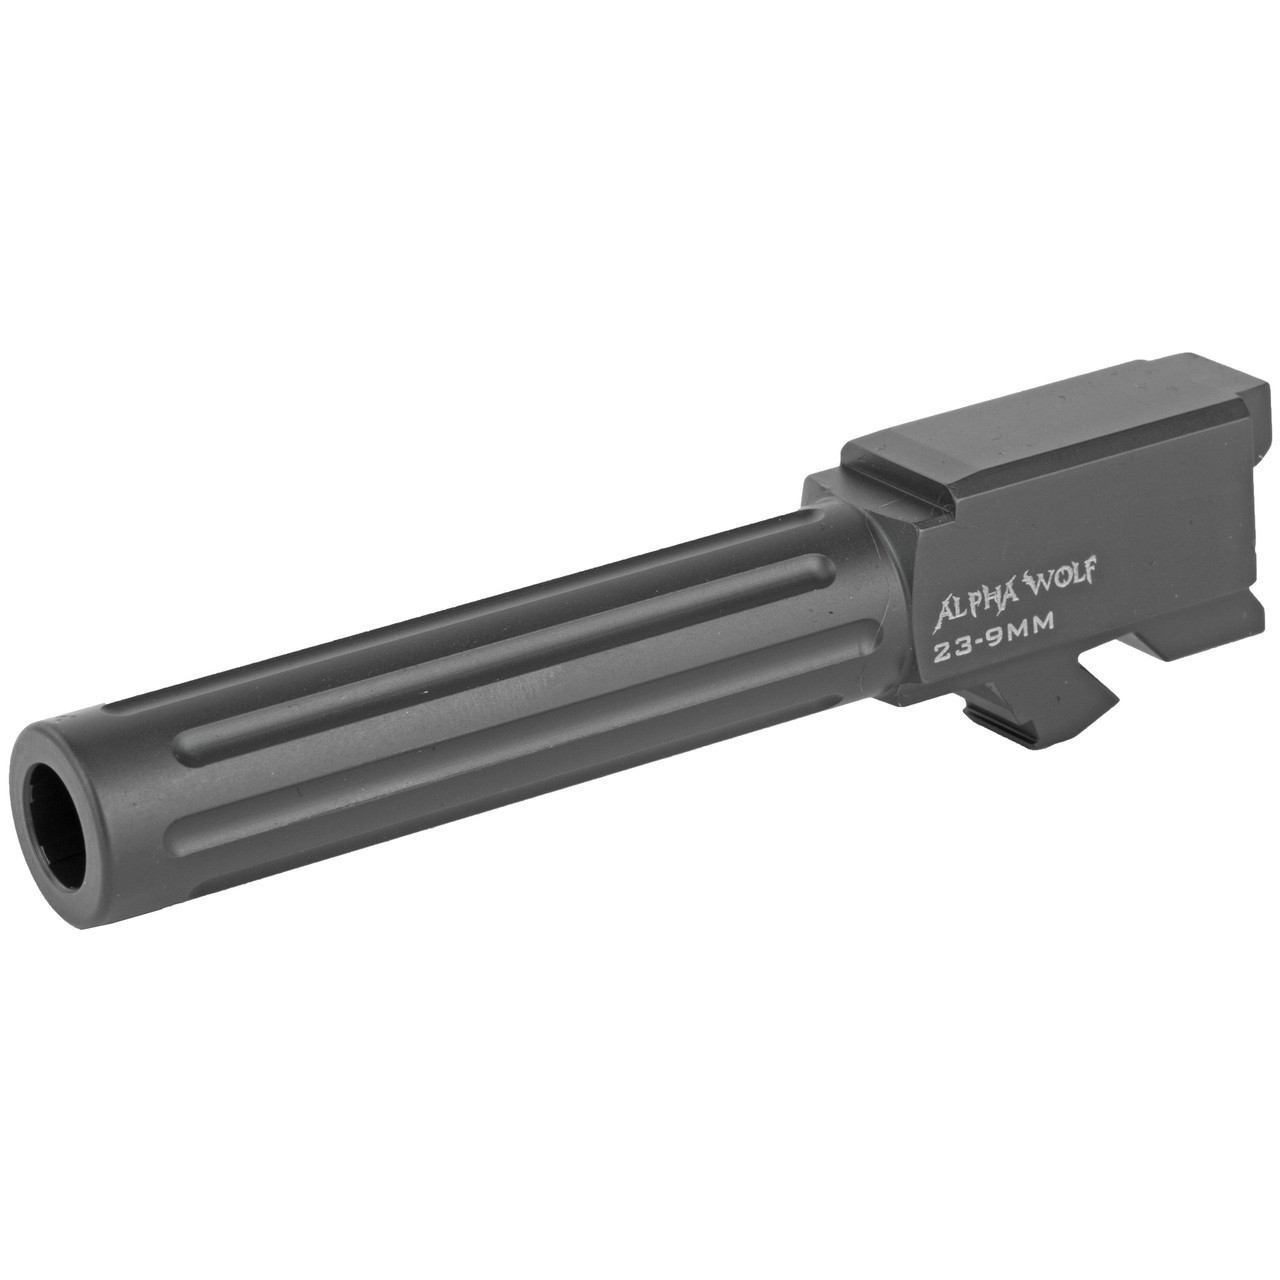 Lone Wolf Alpha Wolf Replacement Barrel For GLOCK 23/32 9mm Luger Conversion Barrel Fluted Machined 416R Stainless Steel Salt Bath Nitride Coated Matte Black AW-239N